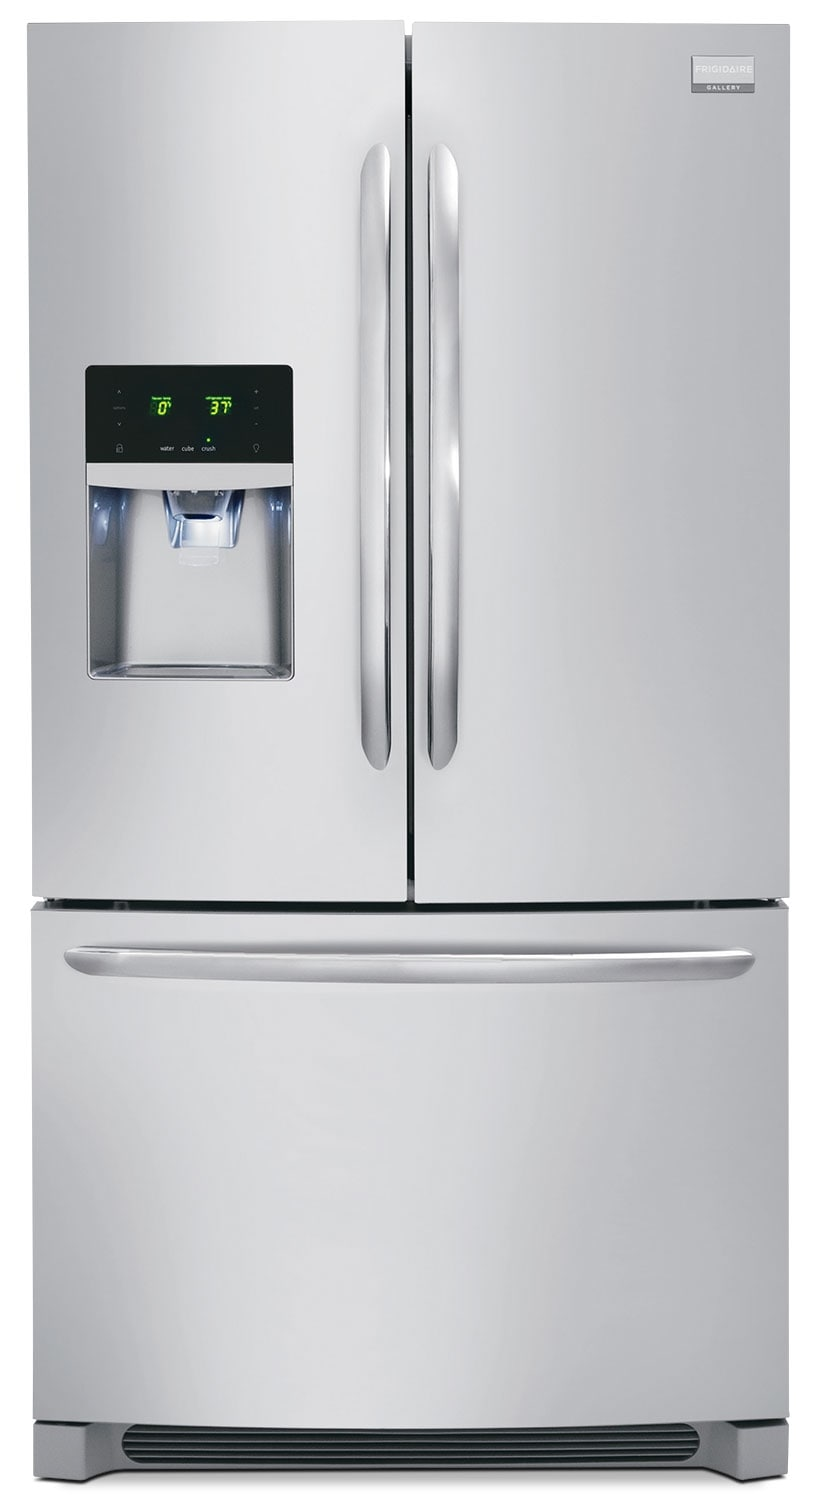 Frigidaire Gallery 28 Cu. Ft. French Door Refrigerator - Stainless Steel